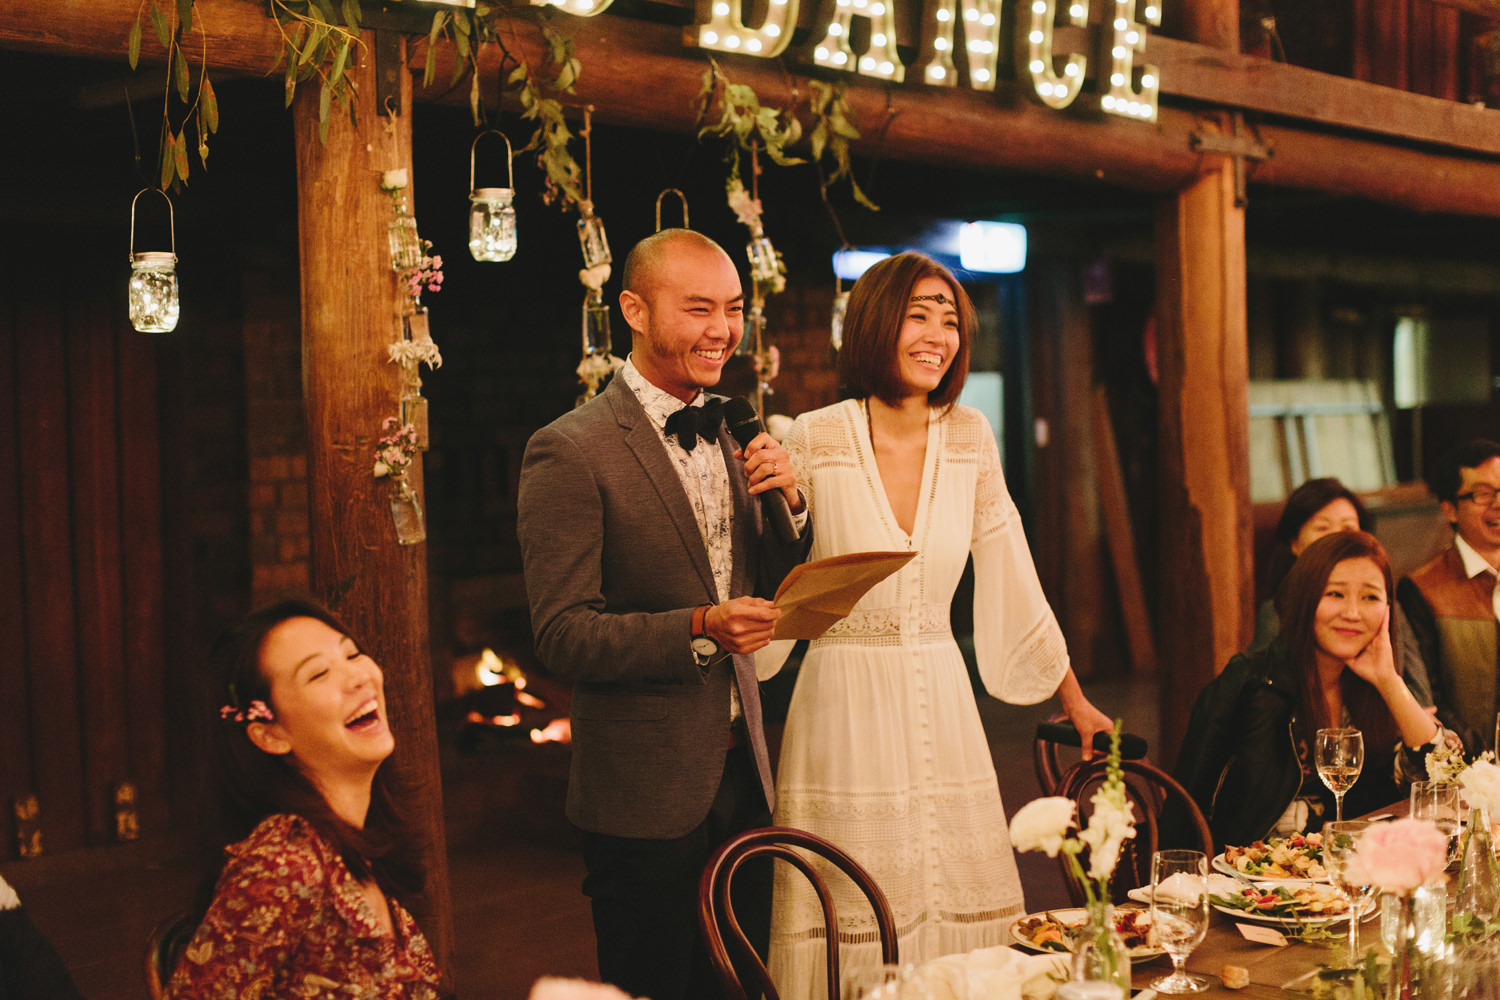 193-Barn_Wedding_Australia_Sam_Ting.jpg